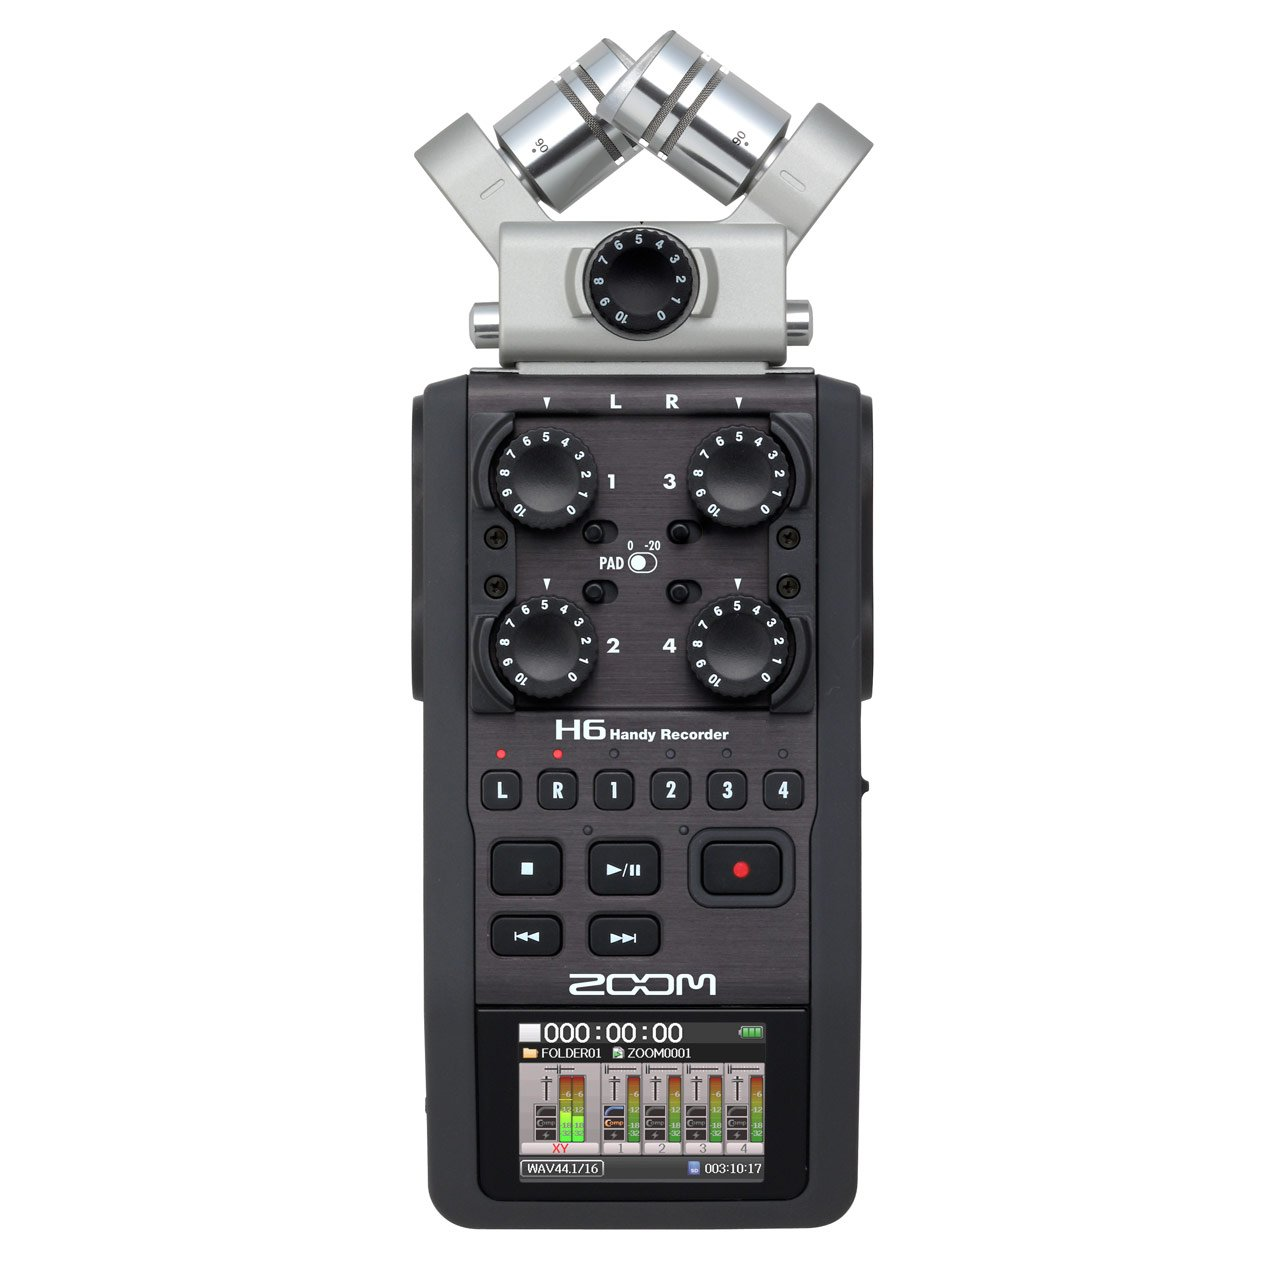 Portable Recorder - Zoom H6 Handy Recorder